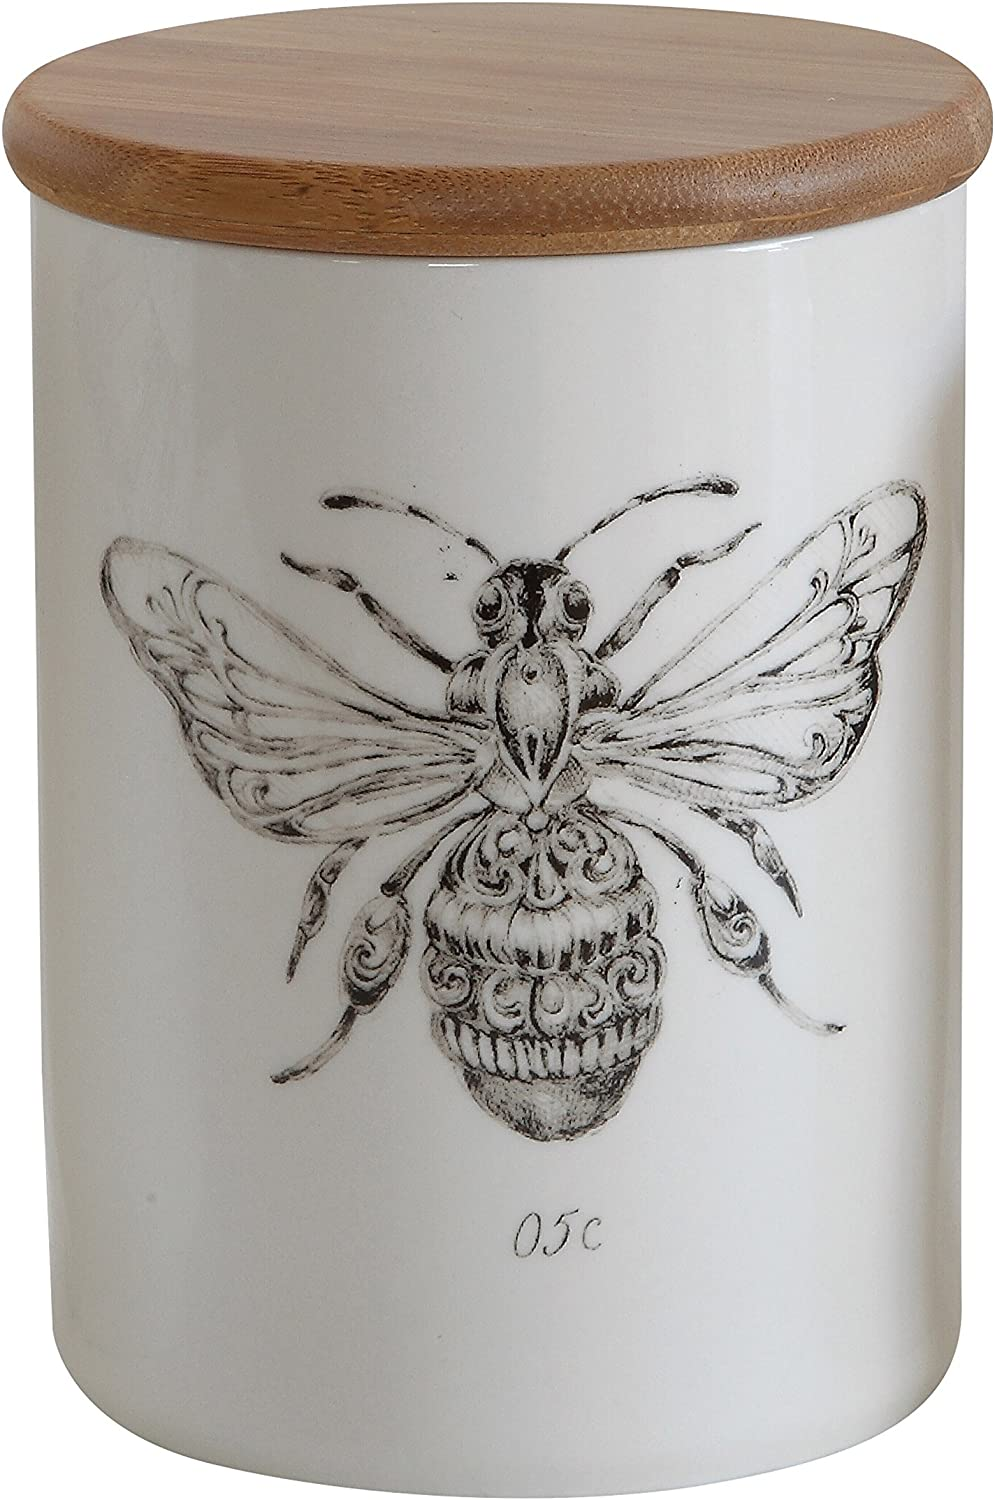 Creative Co-Op White Stoneware Jar with Bee Image & Bamboo Lid